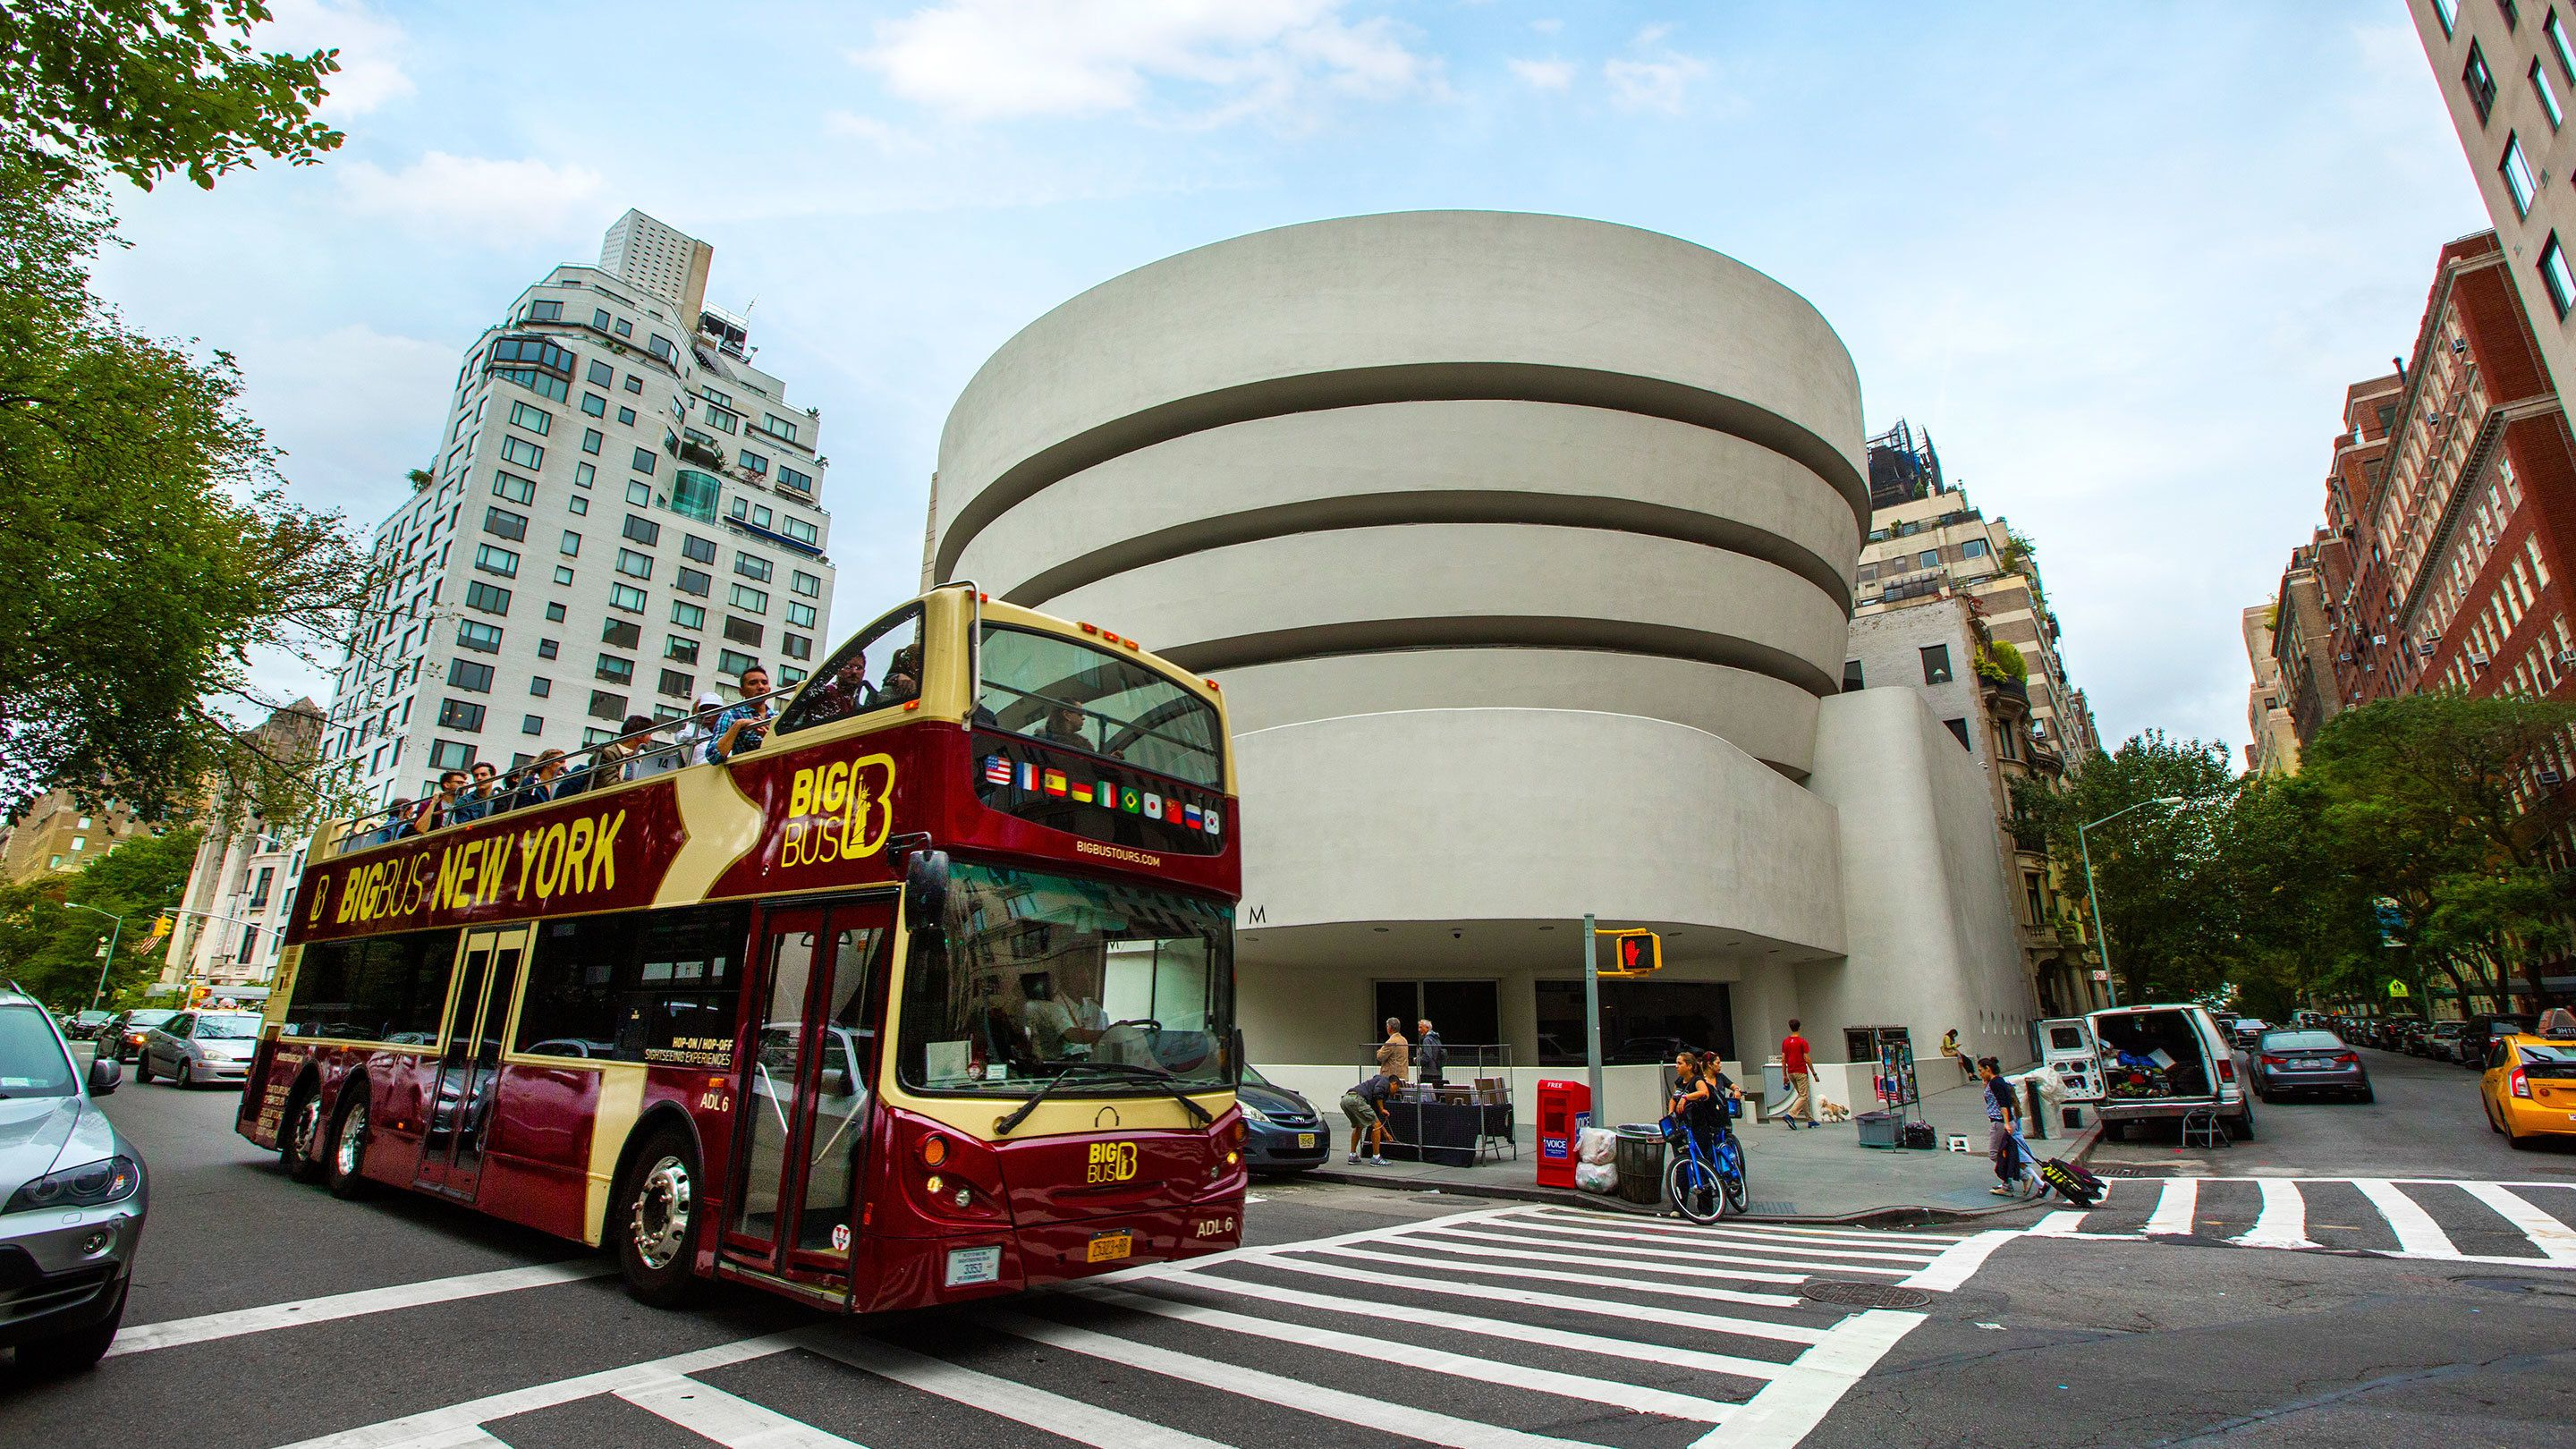 Double decker tour bus driving past the Guggenheim in New York City